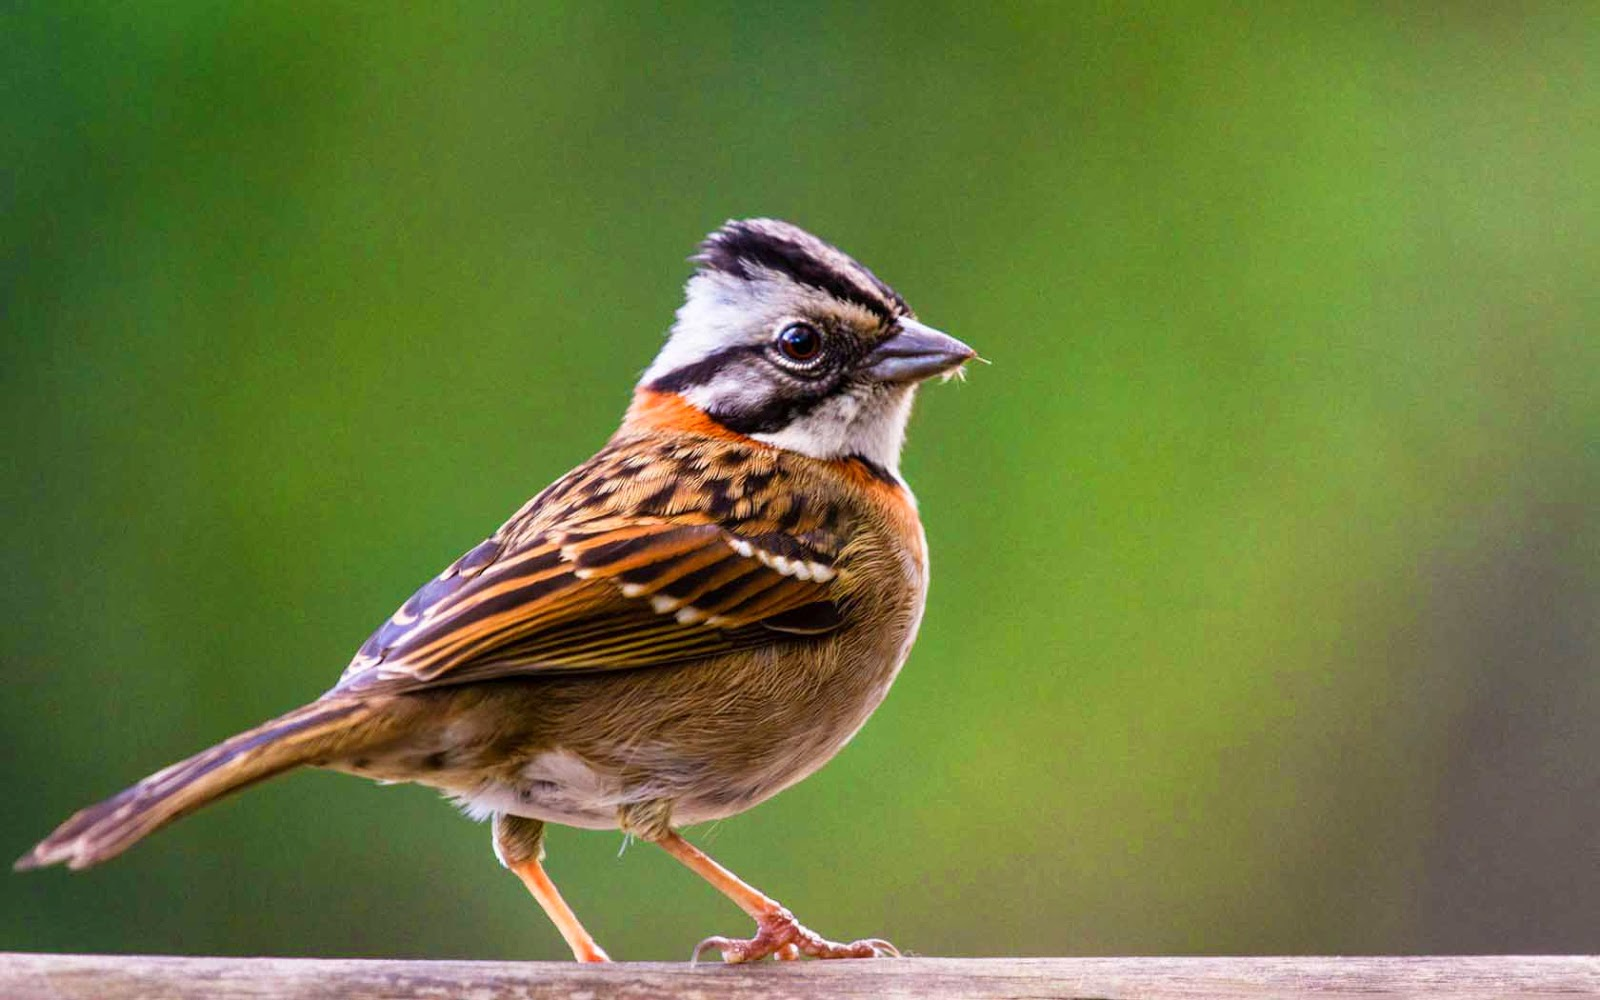 Desktop Wallpaper With Tamil Quotes Lovable Images Cute Sparrow Wallpapers Hd Free Download